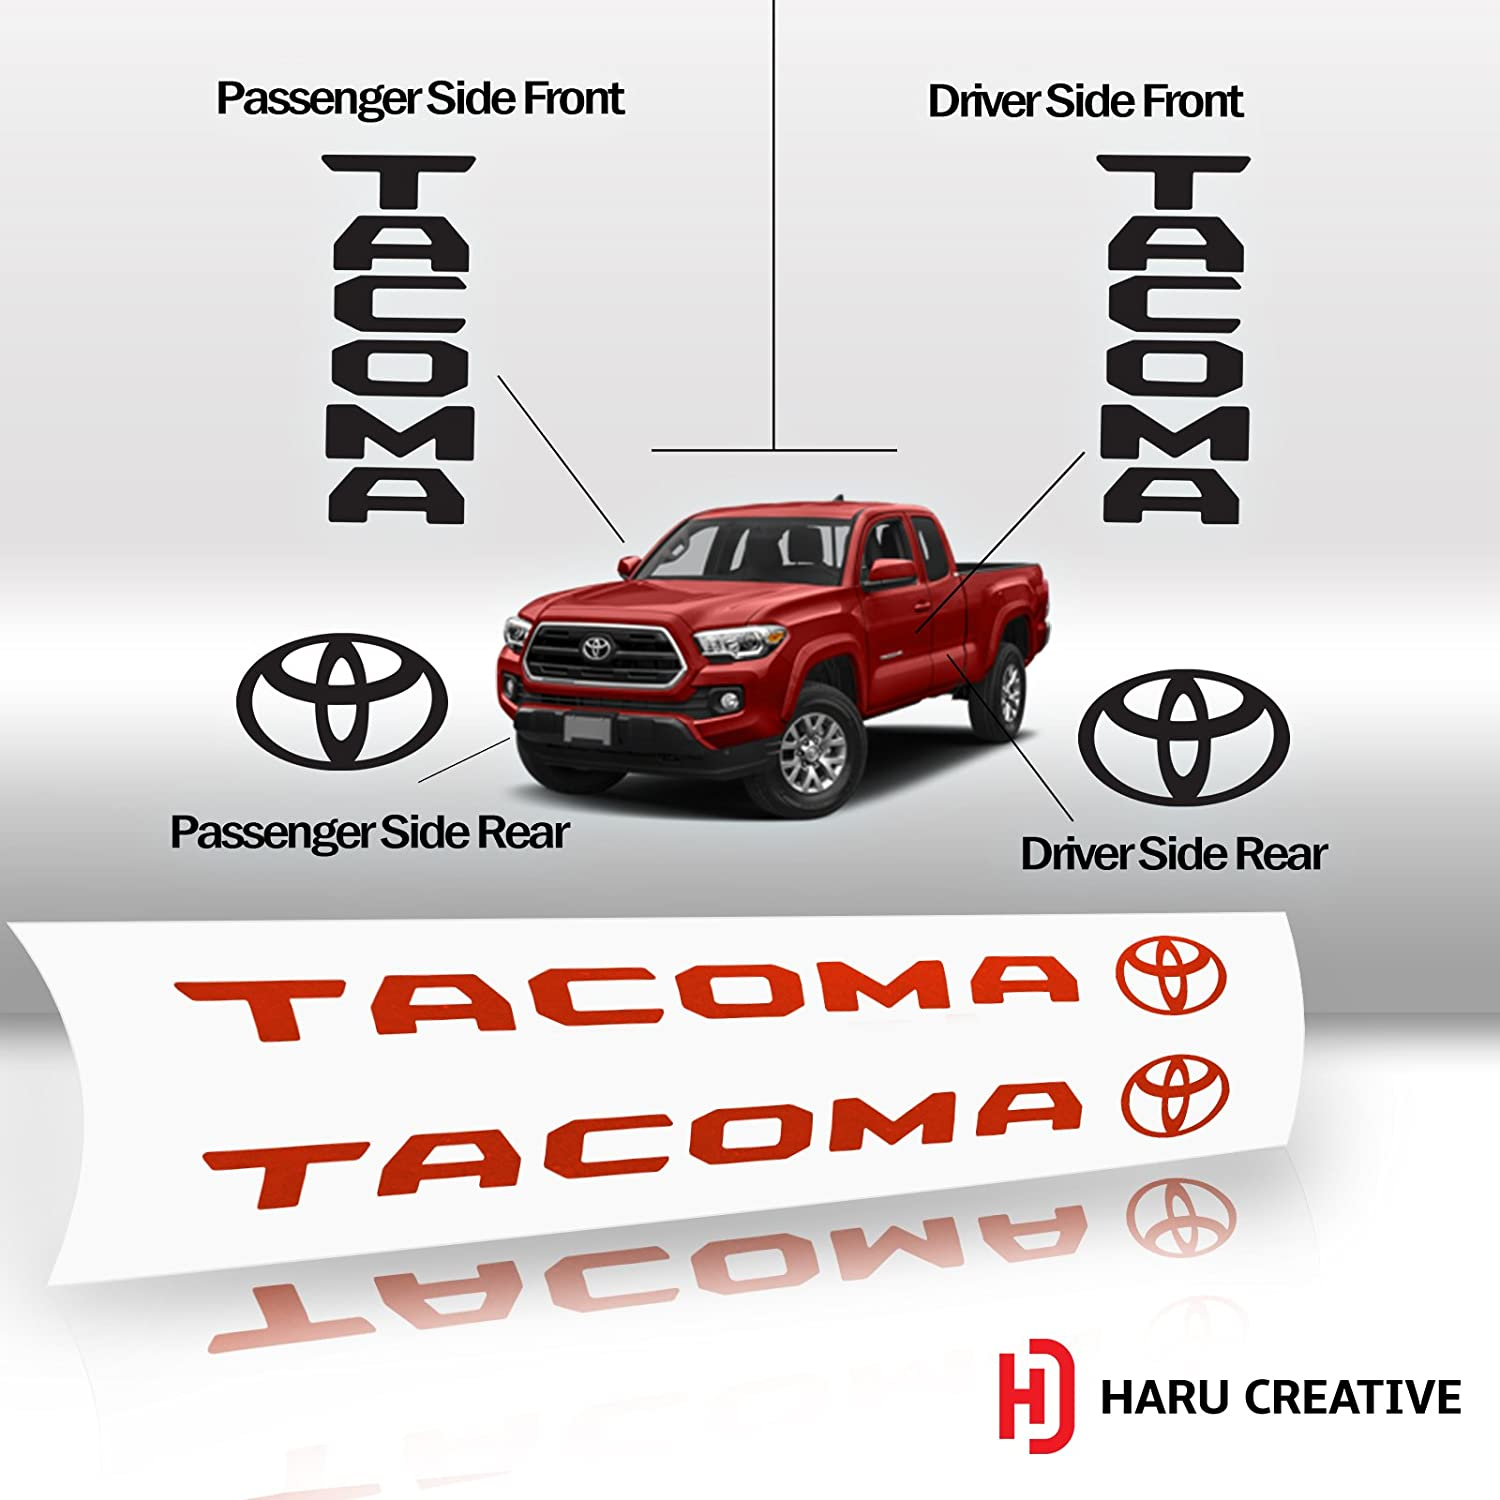 Four Door Set Haru Creative Toyota Tacoma 2016 2017 2018 Door Sill Protector Letter Overlay VInyl Decal - Metallic Matte Chrome Red